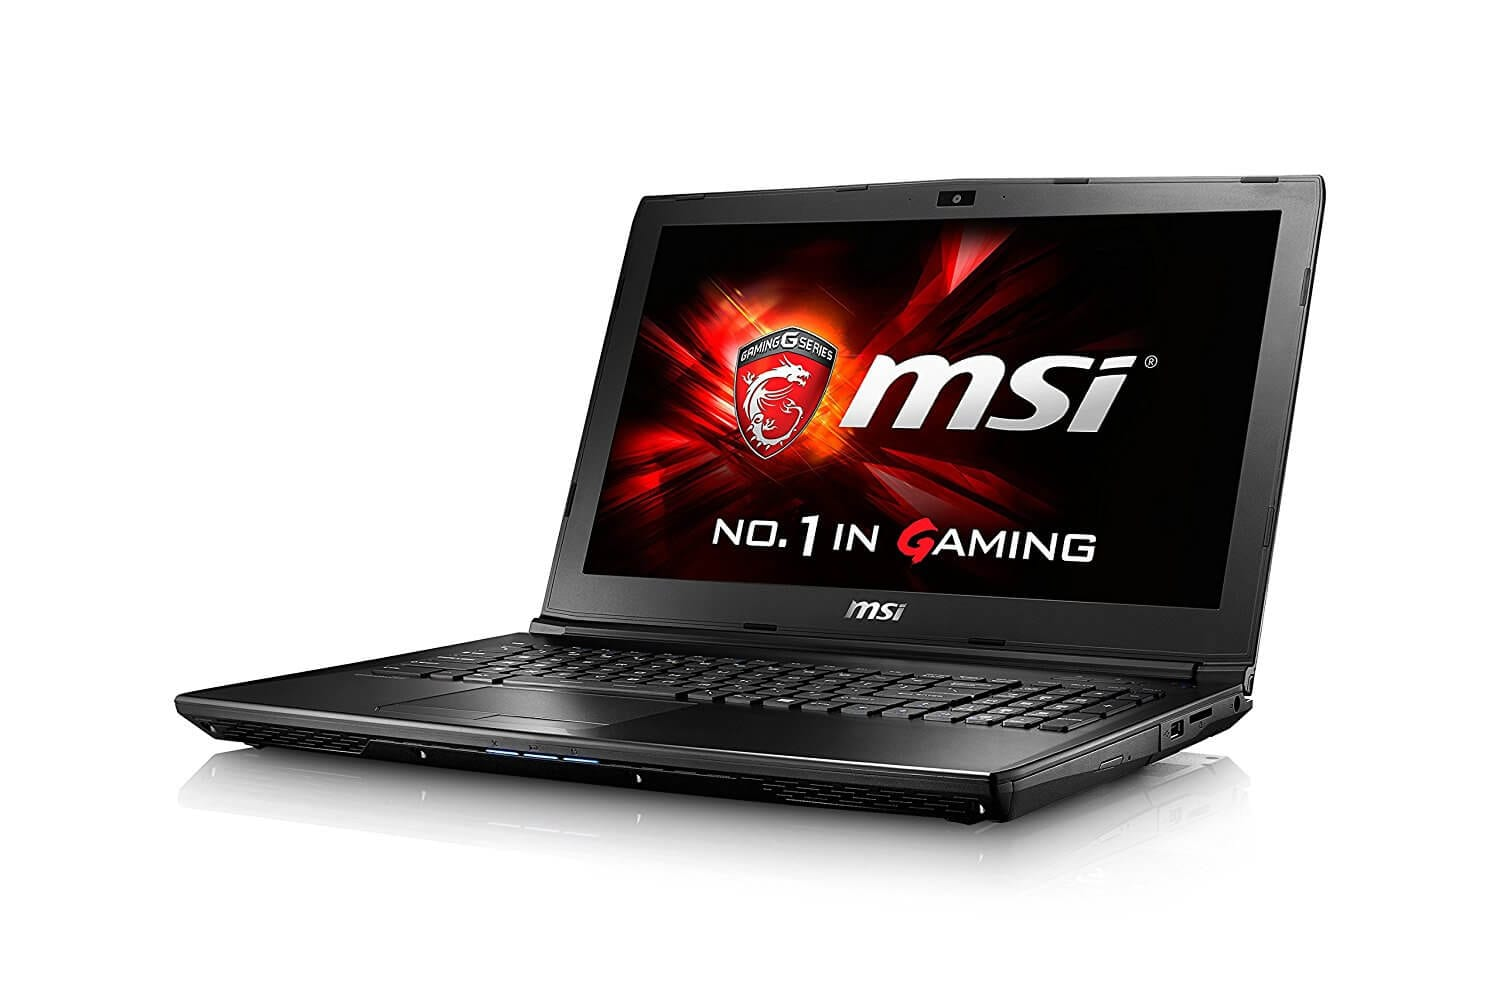 MSI GL62 1673UK 15.6-Inch FHD Gaming Notebook: Cheap budget gaming laptop UK under £700